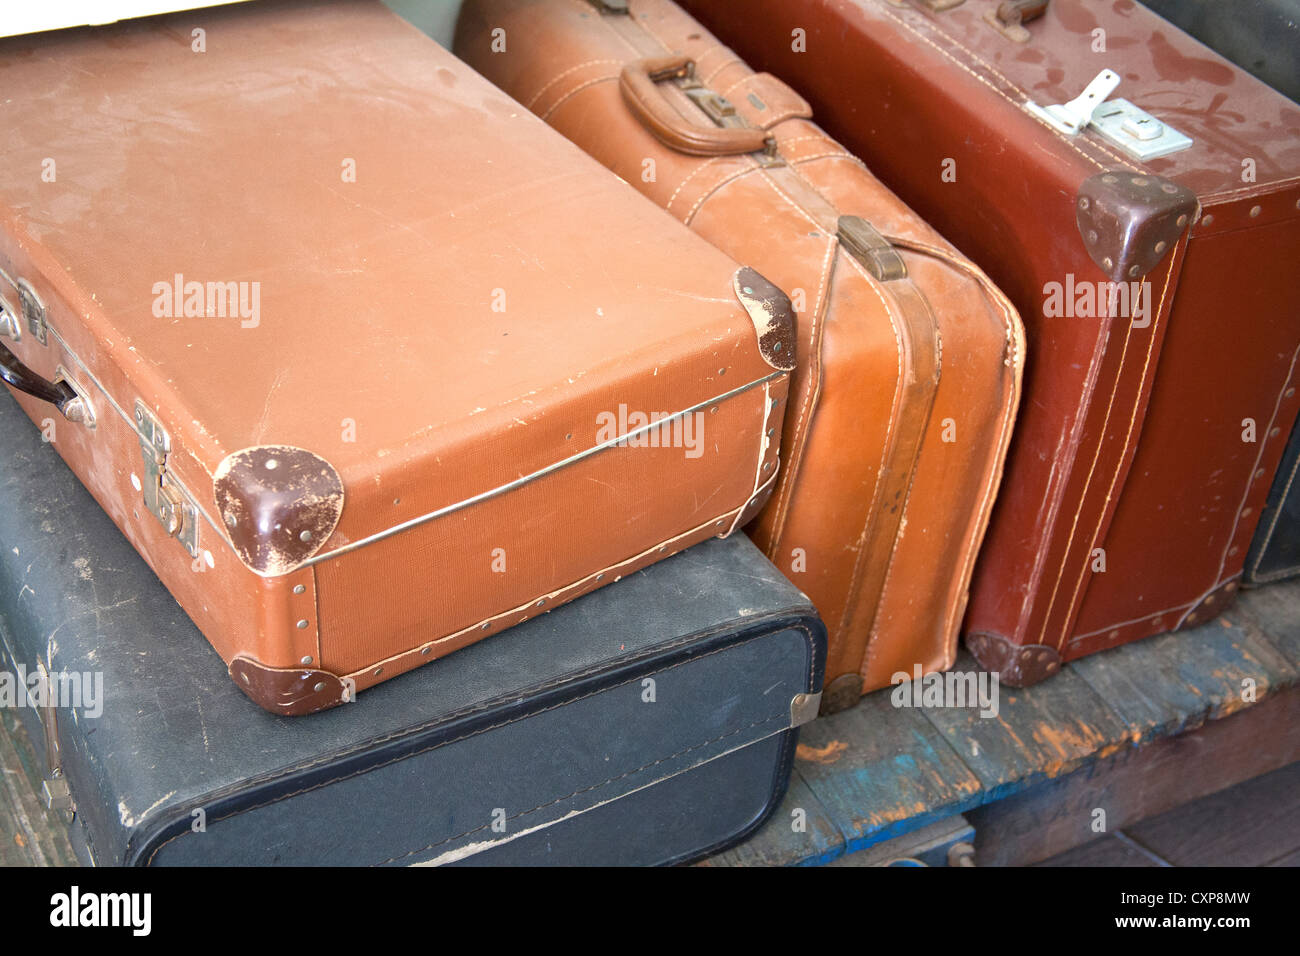 Old Suitcases Part - 47: Old Suitcases In Railway Station